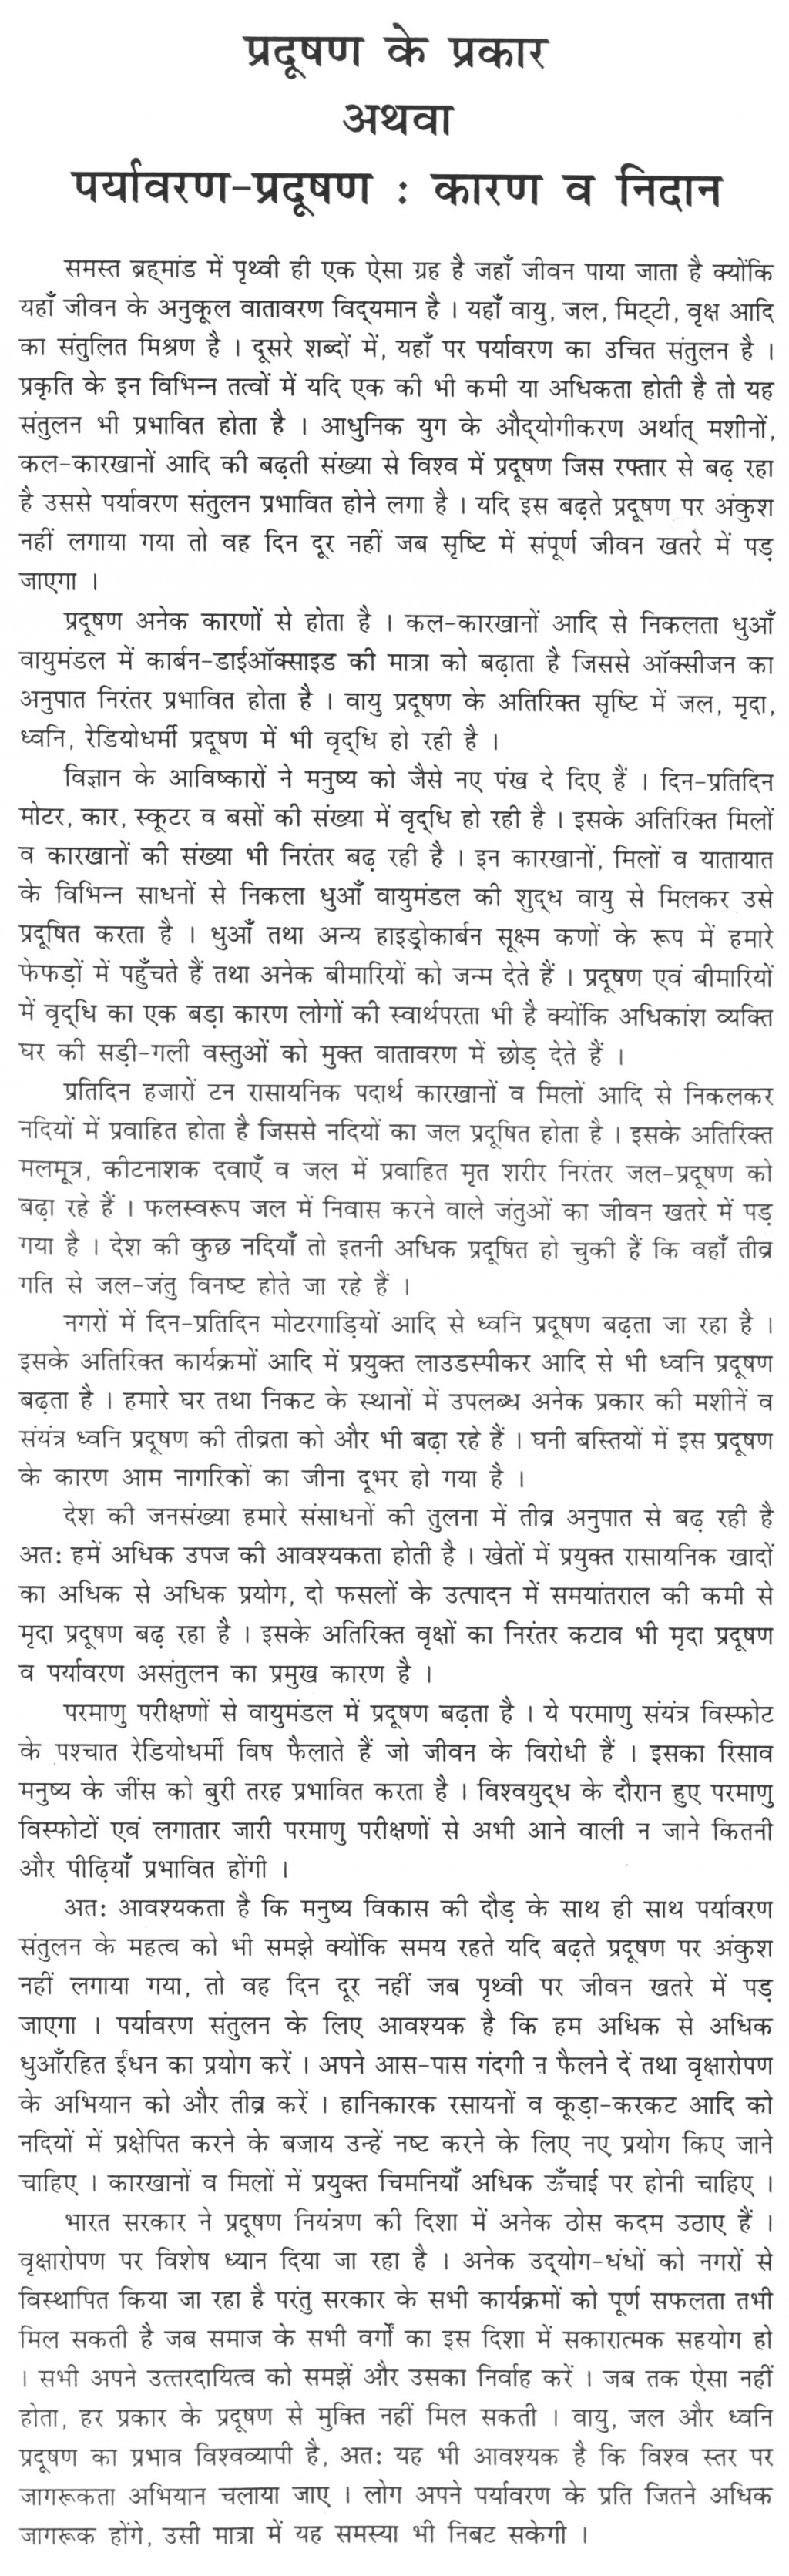 014 Good Habits Essay In Hindi Exceptional Food Wikipedia Large